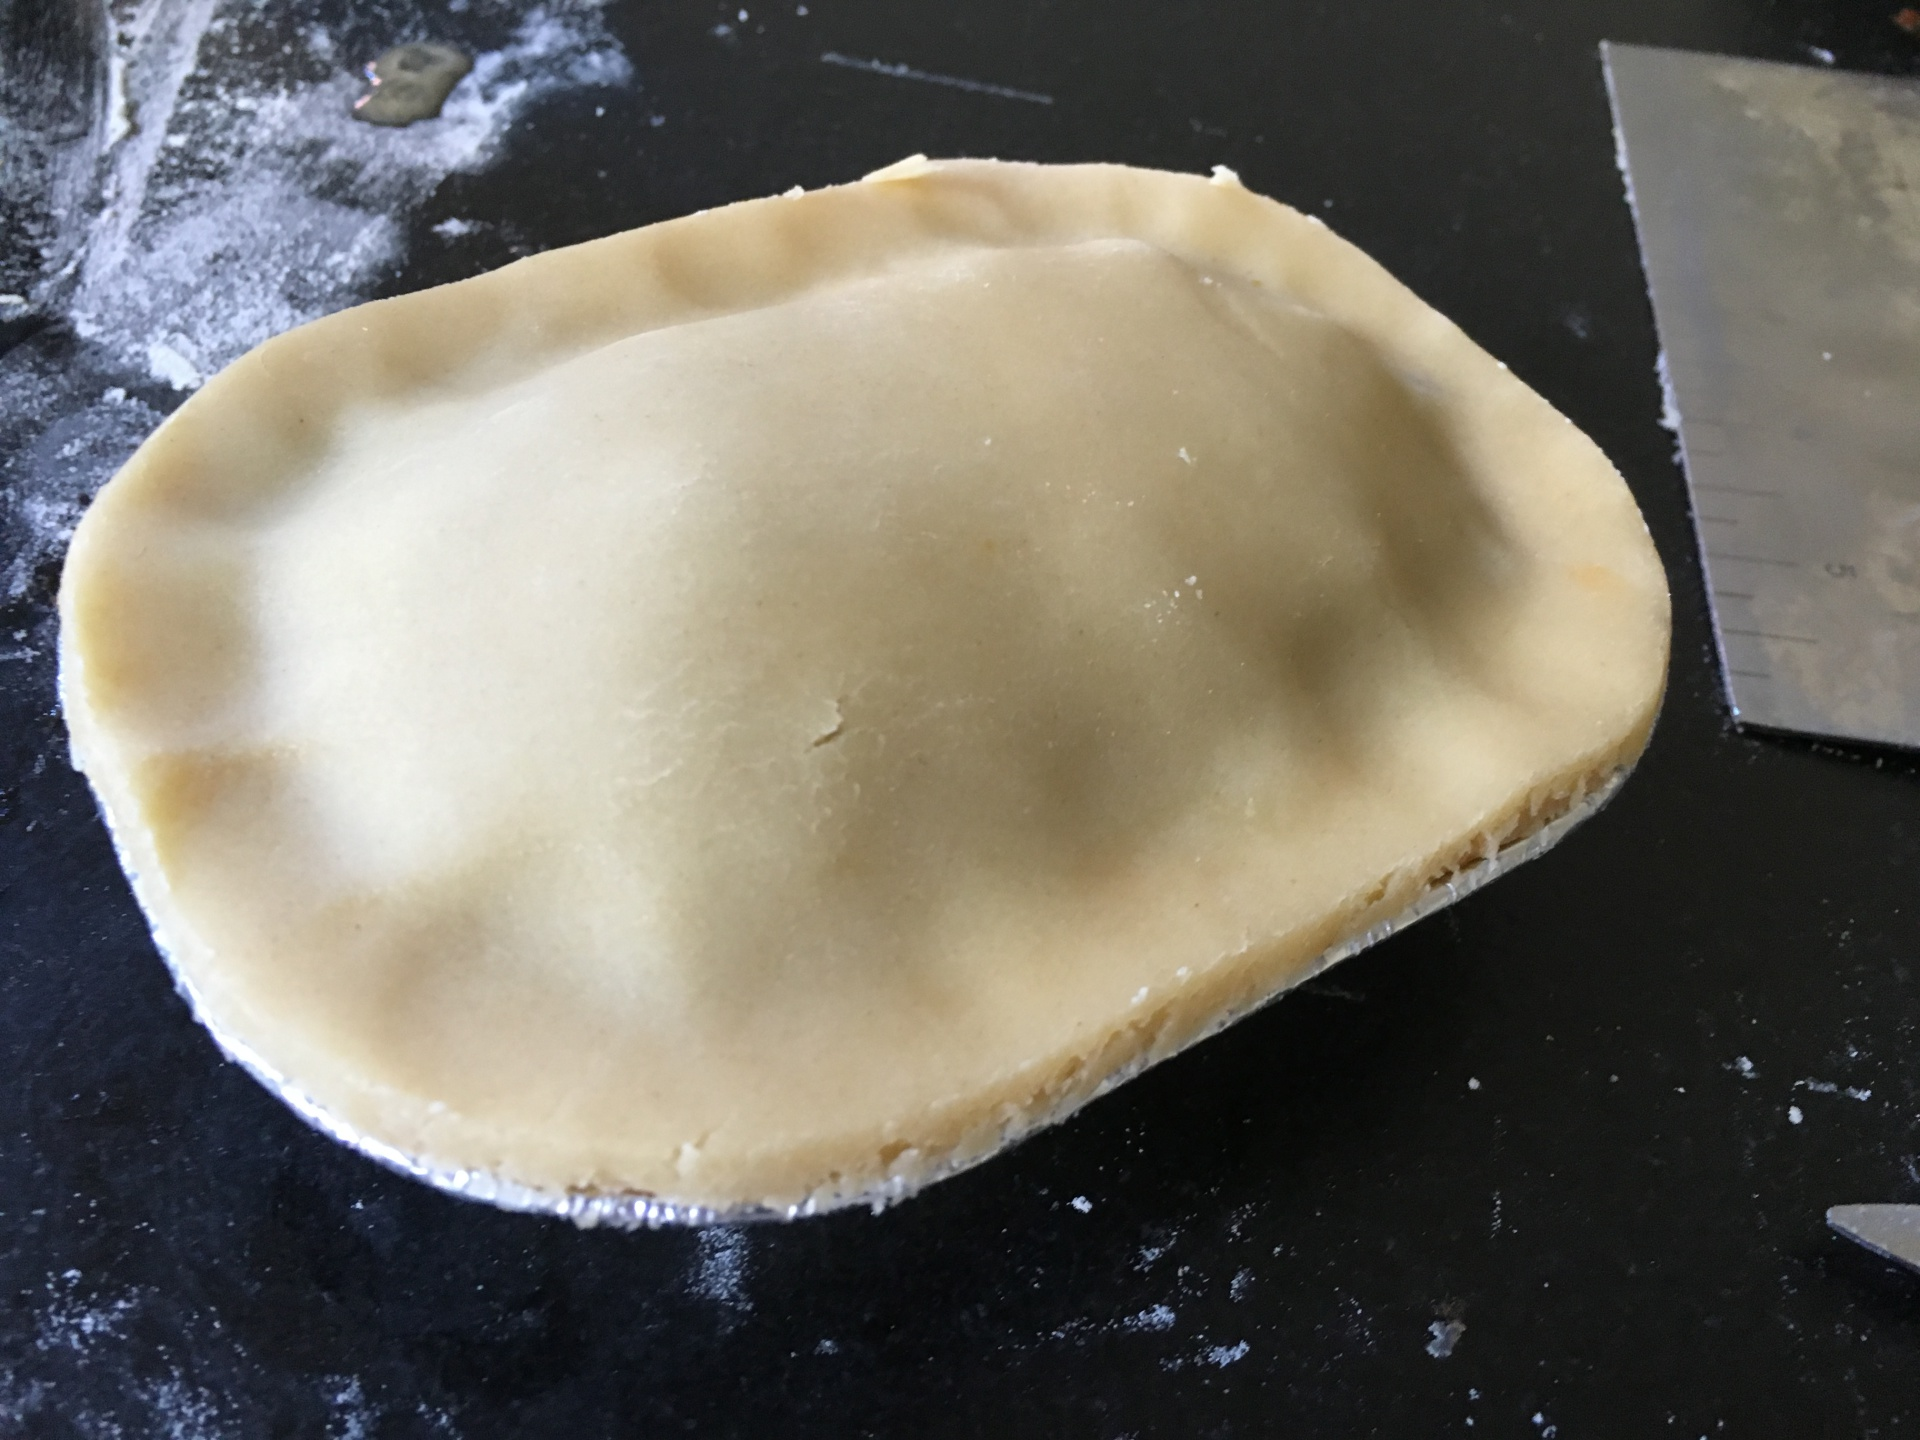 Cover that pie